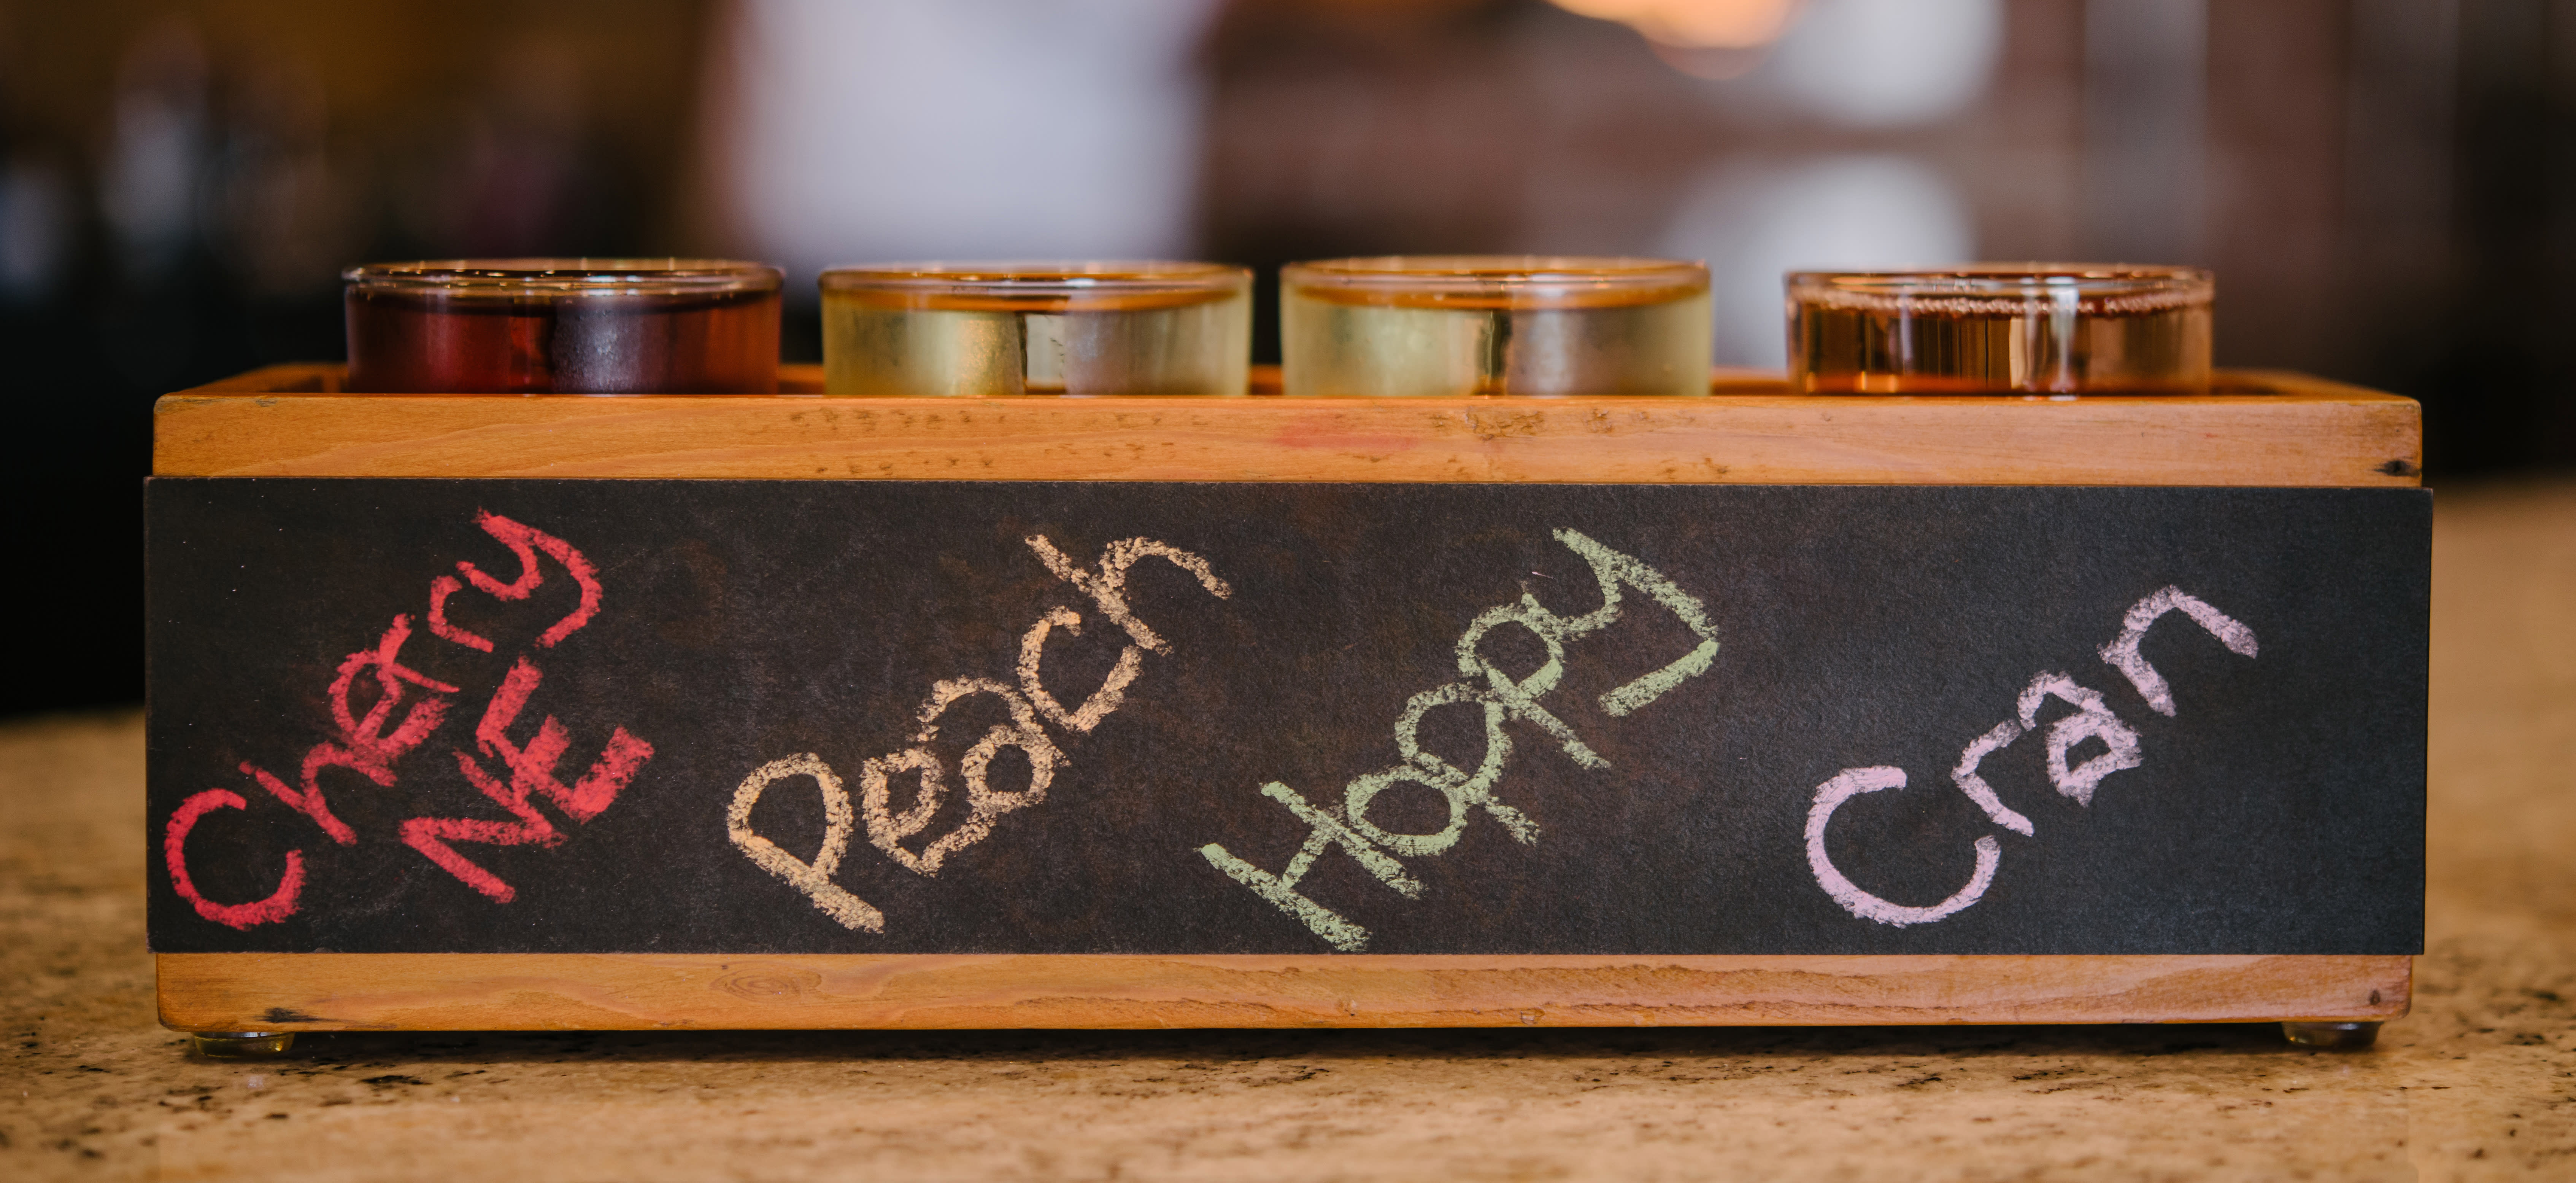 Can't decide on a cider? Try them all at Wyndridge Farms